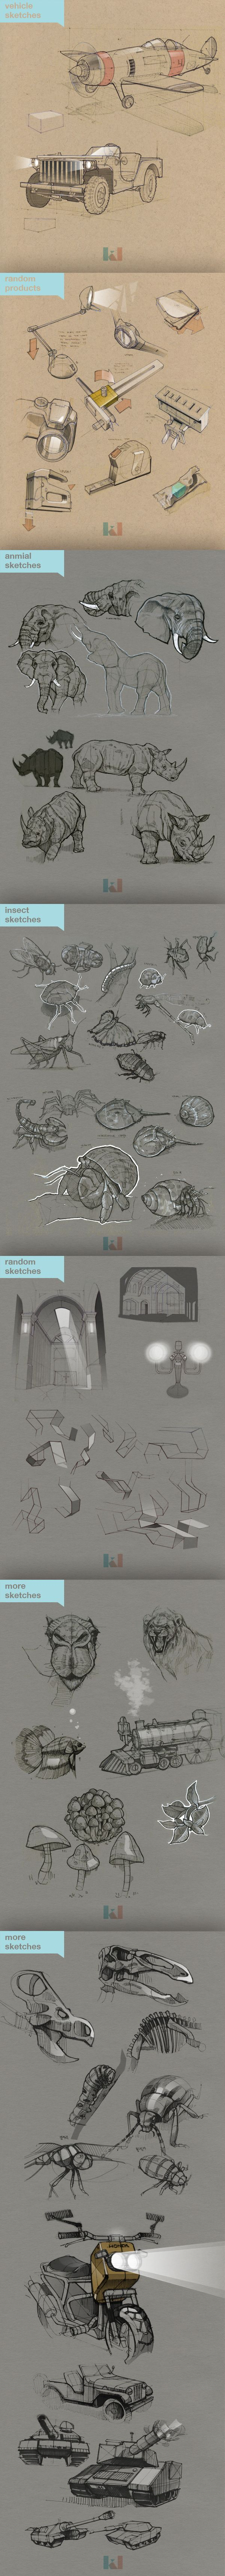 Sketches by Kidong Kwon, via Behance